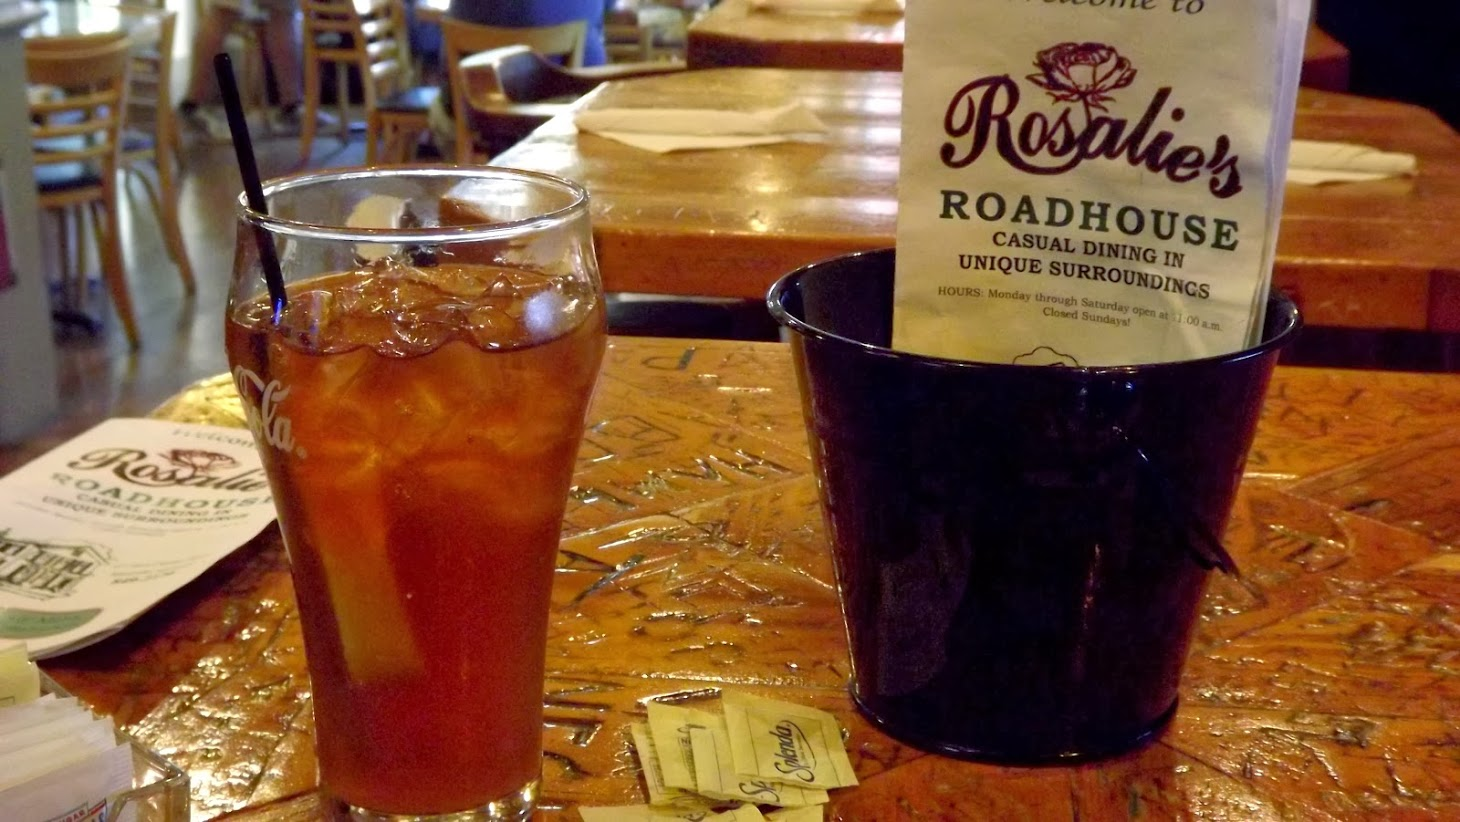 glass of iced tea with Rosalie's roadhouse menu